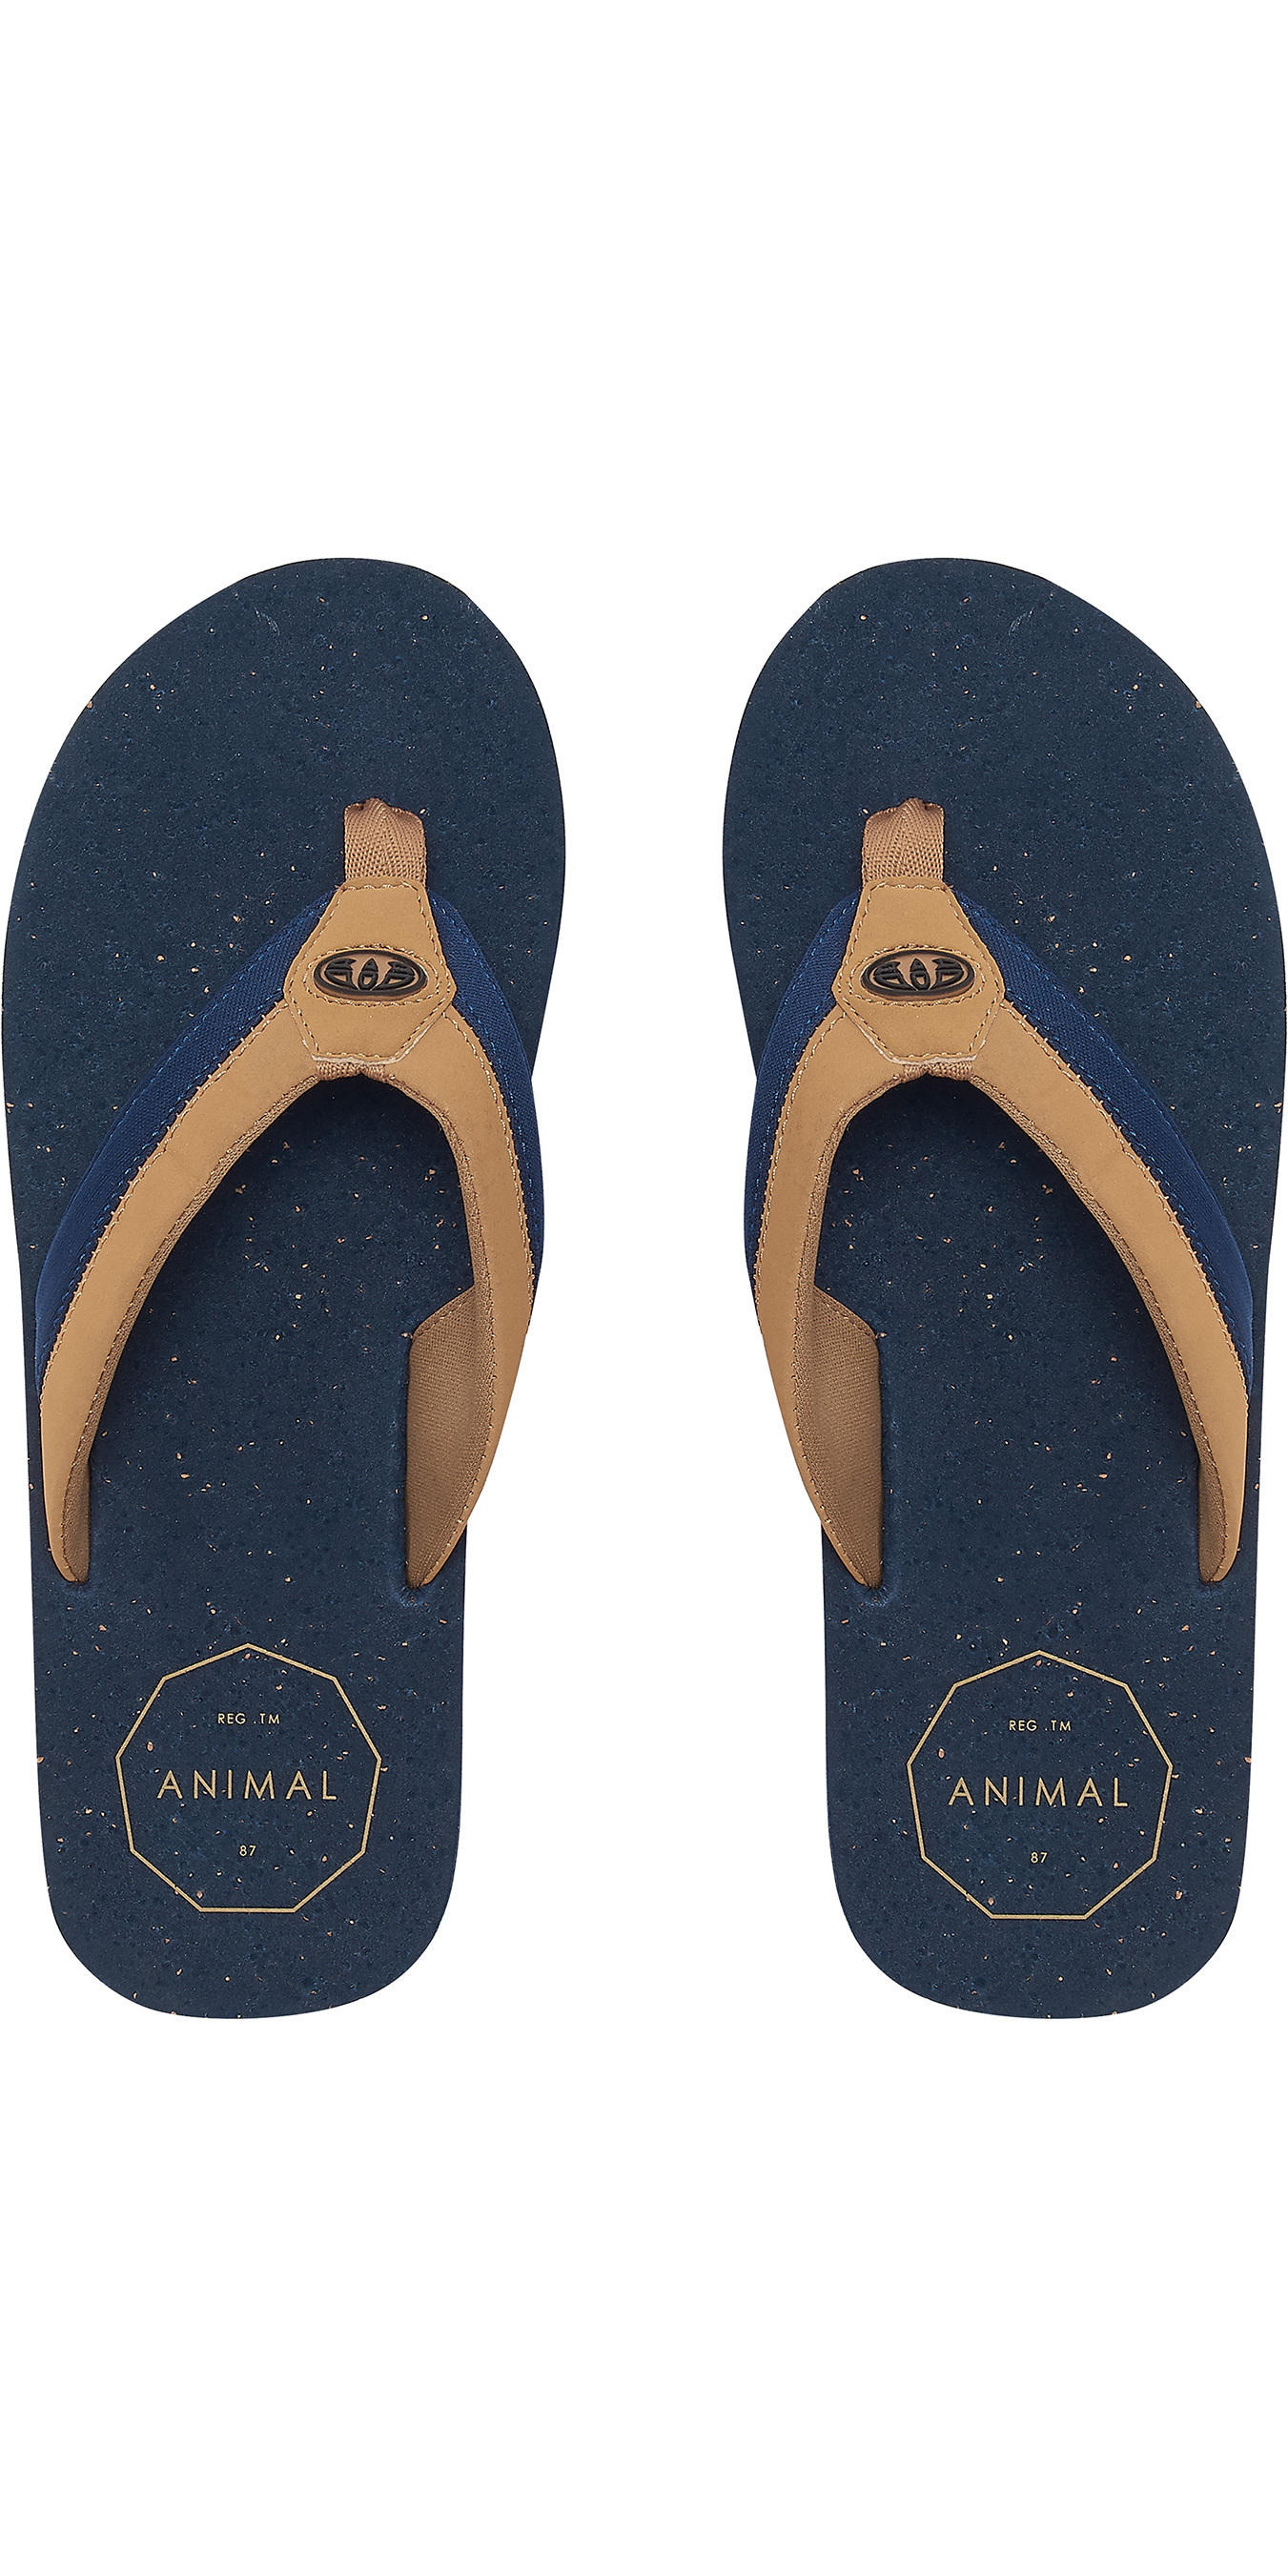 1c1342439f5e 2019 Animal Mens Huxley Flip Flops Dark Navy Fm9sq012 - Flip Flops -  Footwear - by Animal